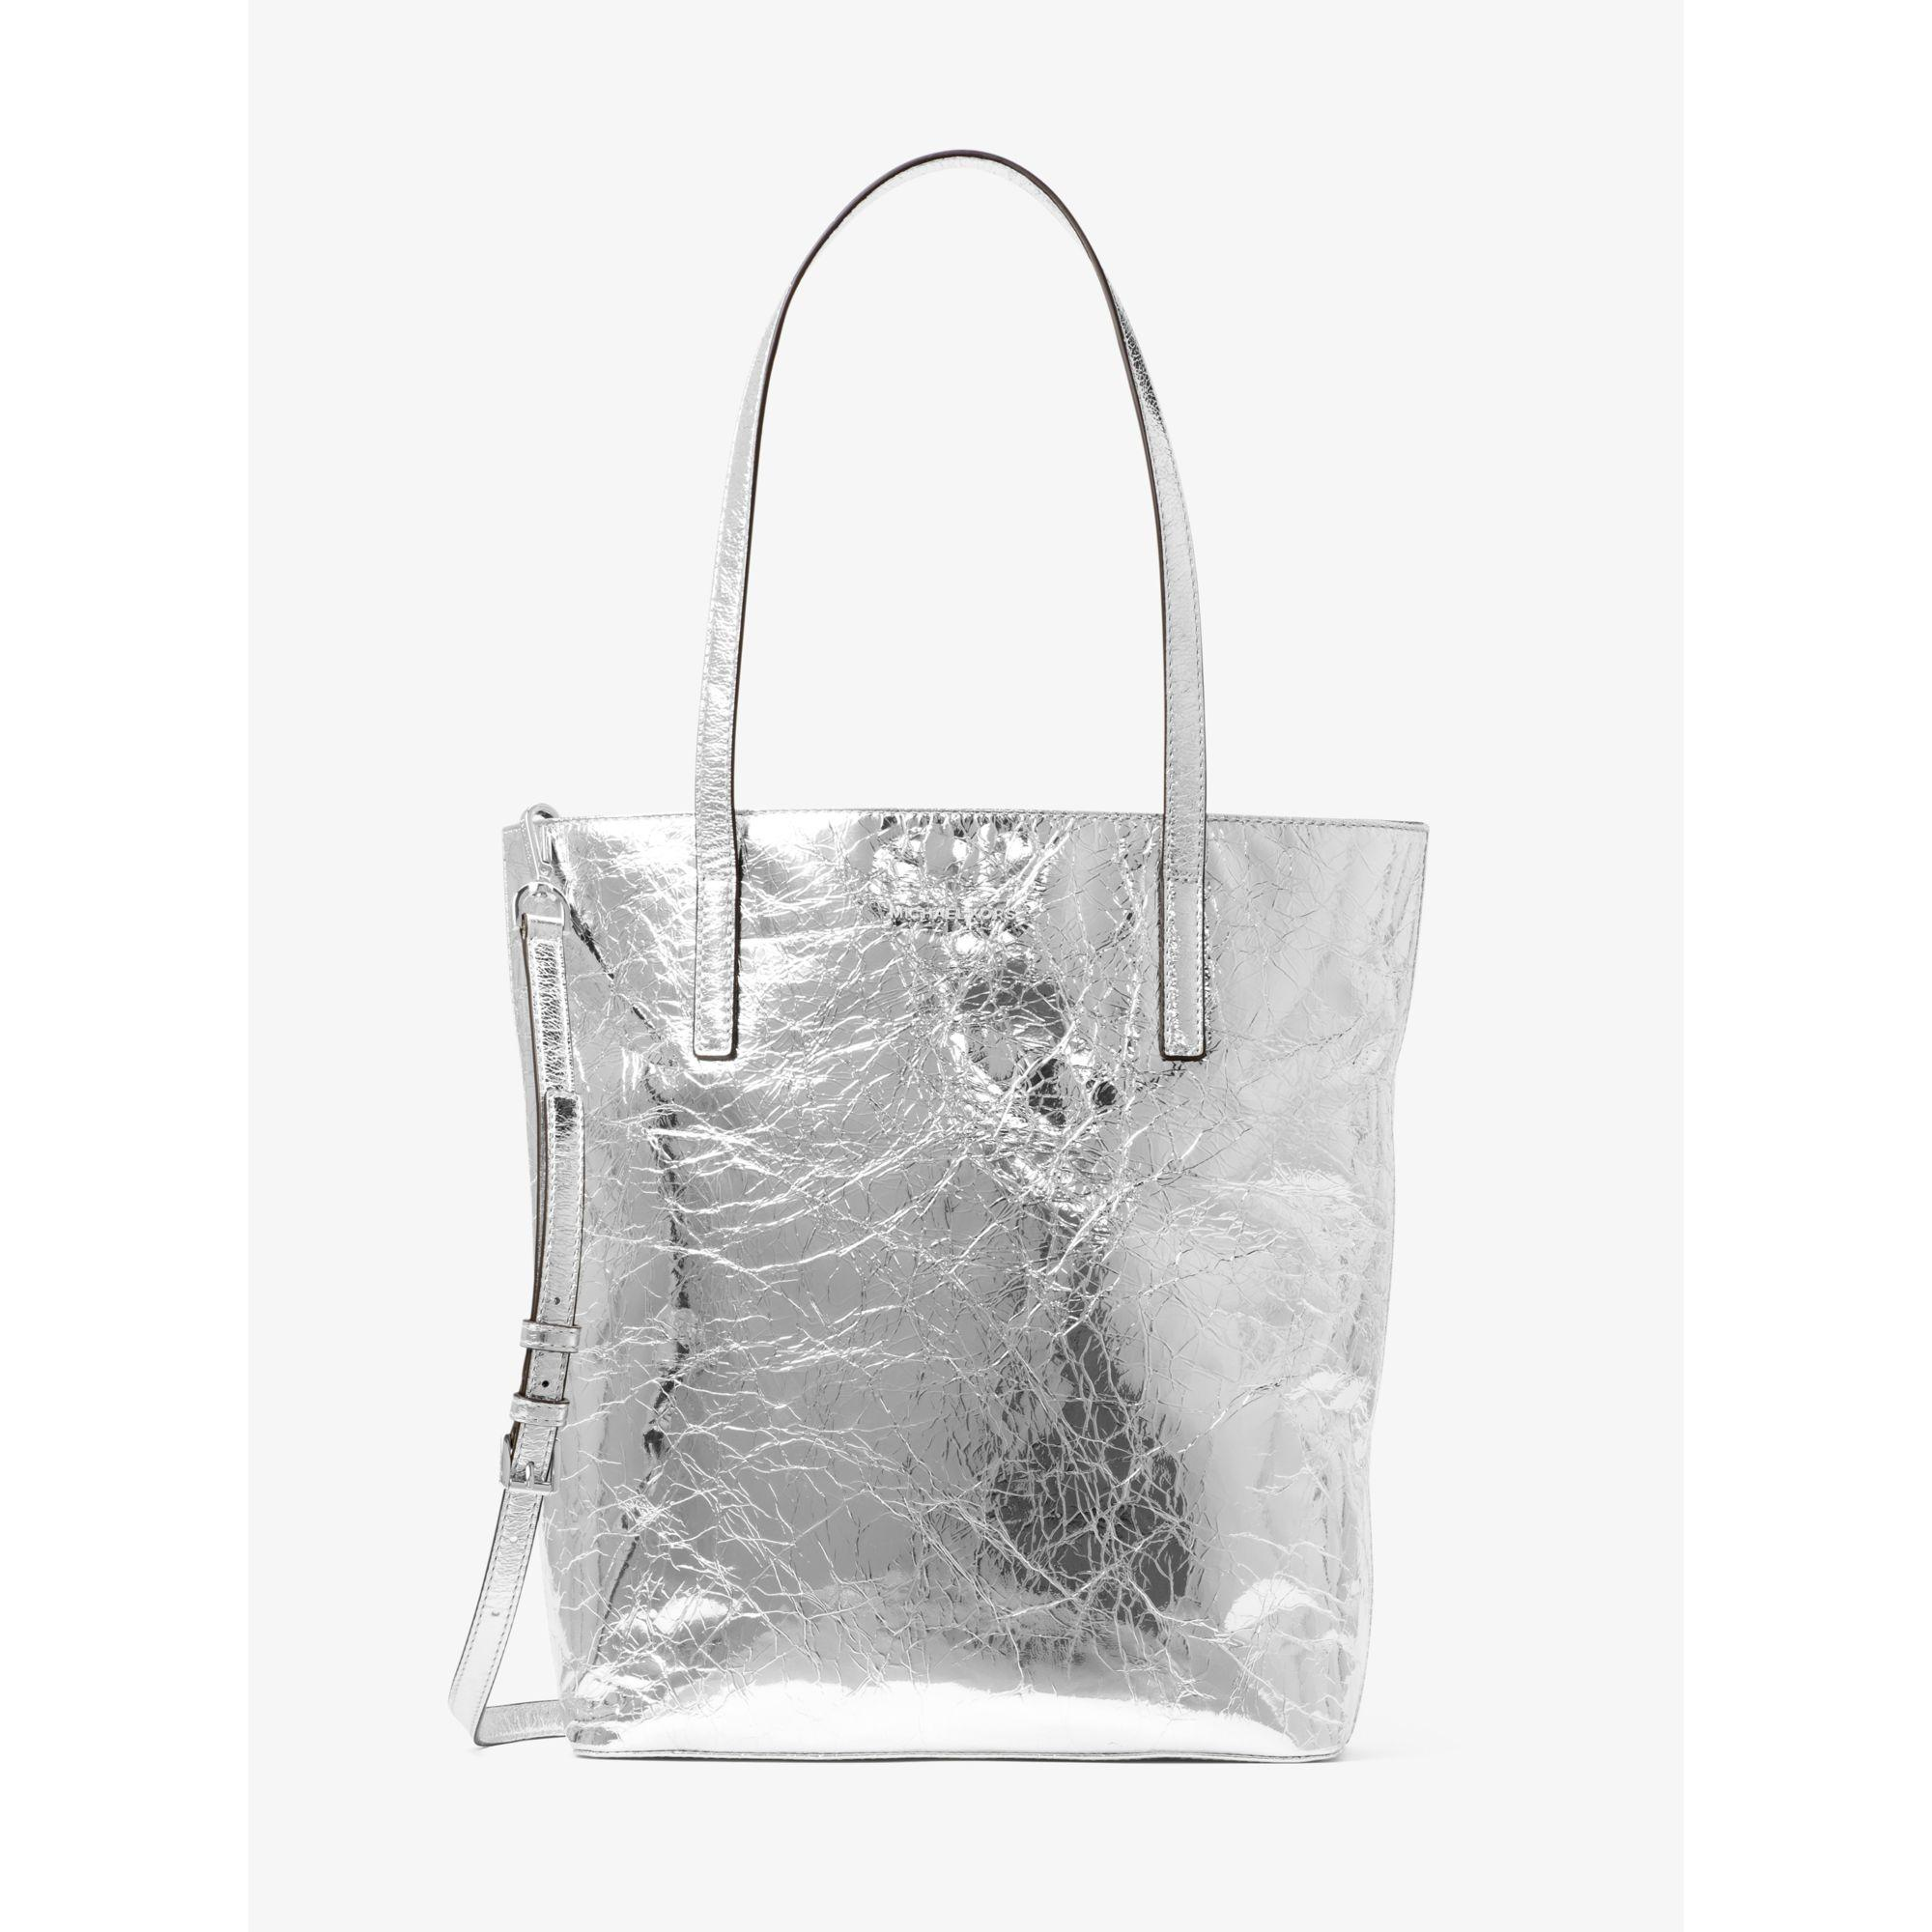 a5774be36dc0 Michael Kors Emry Large Crinkled-leather Tote Bag in Metallic - Lyst